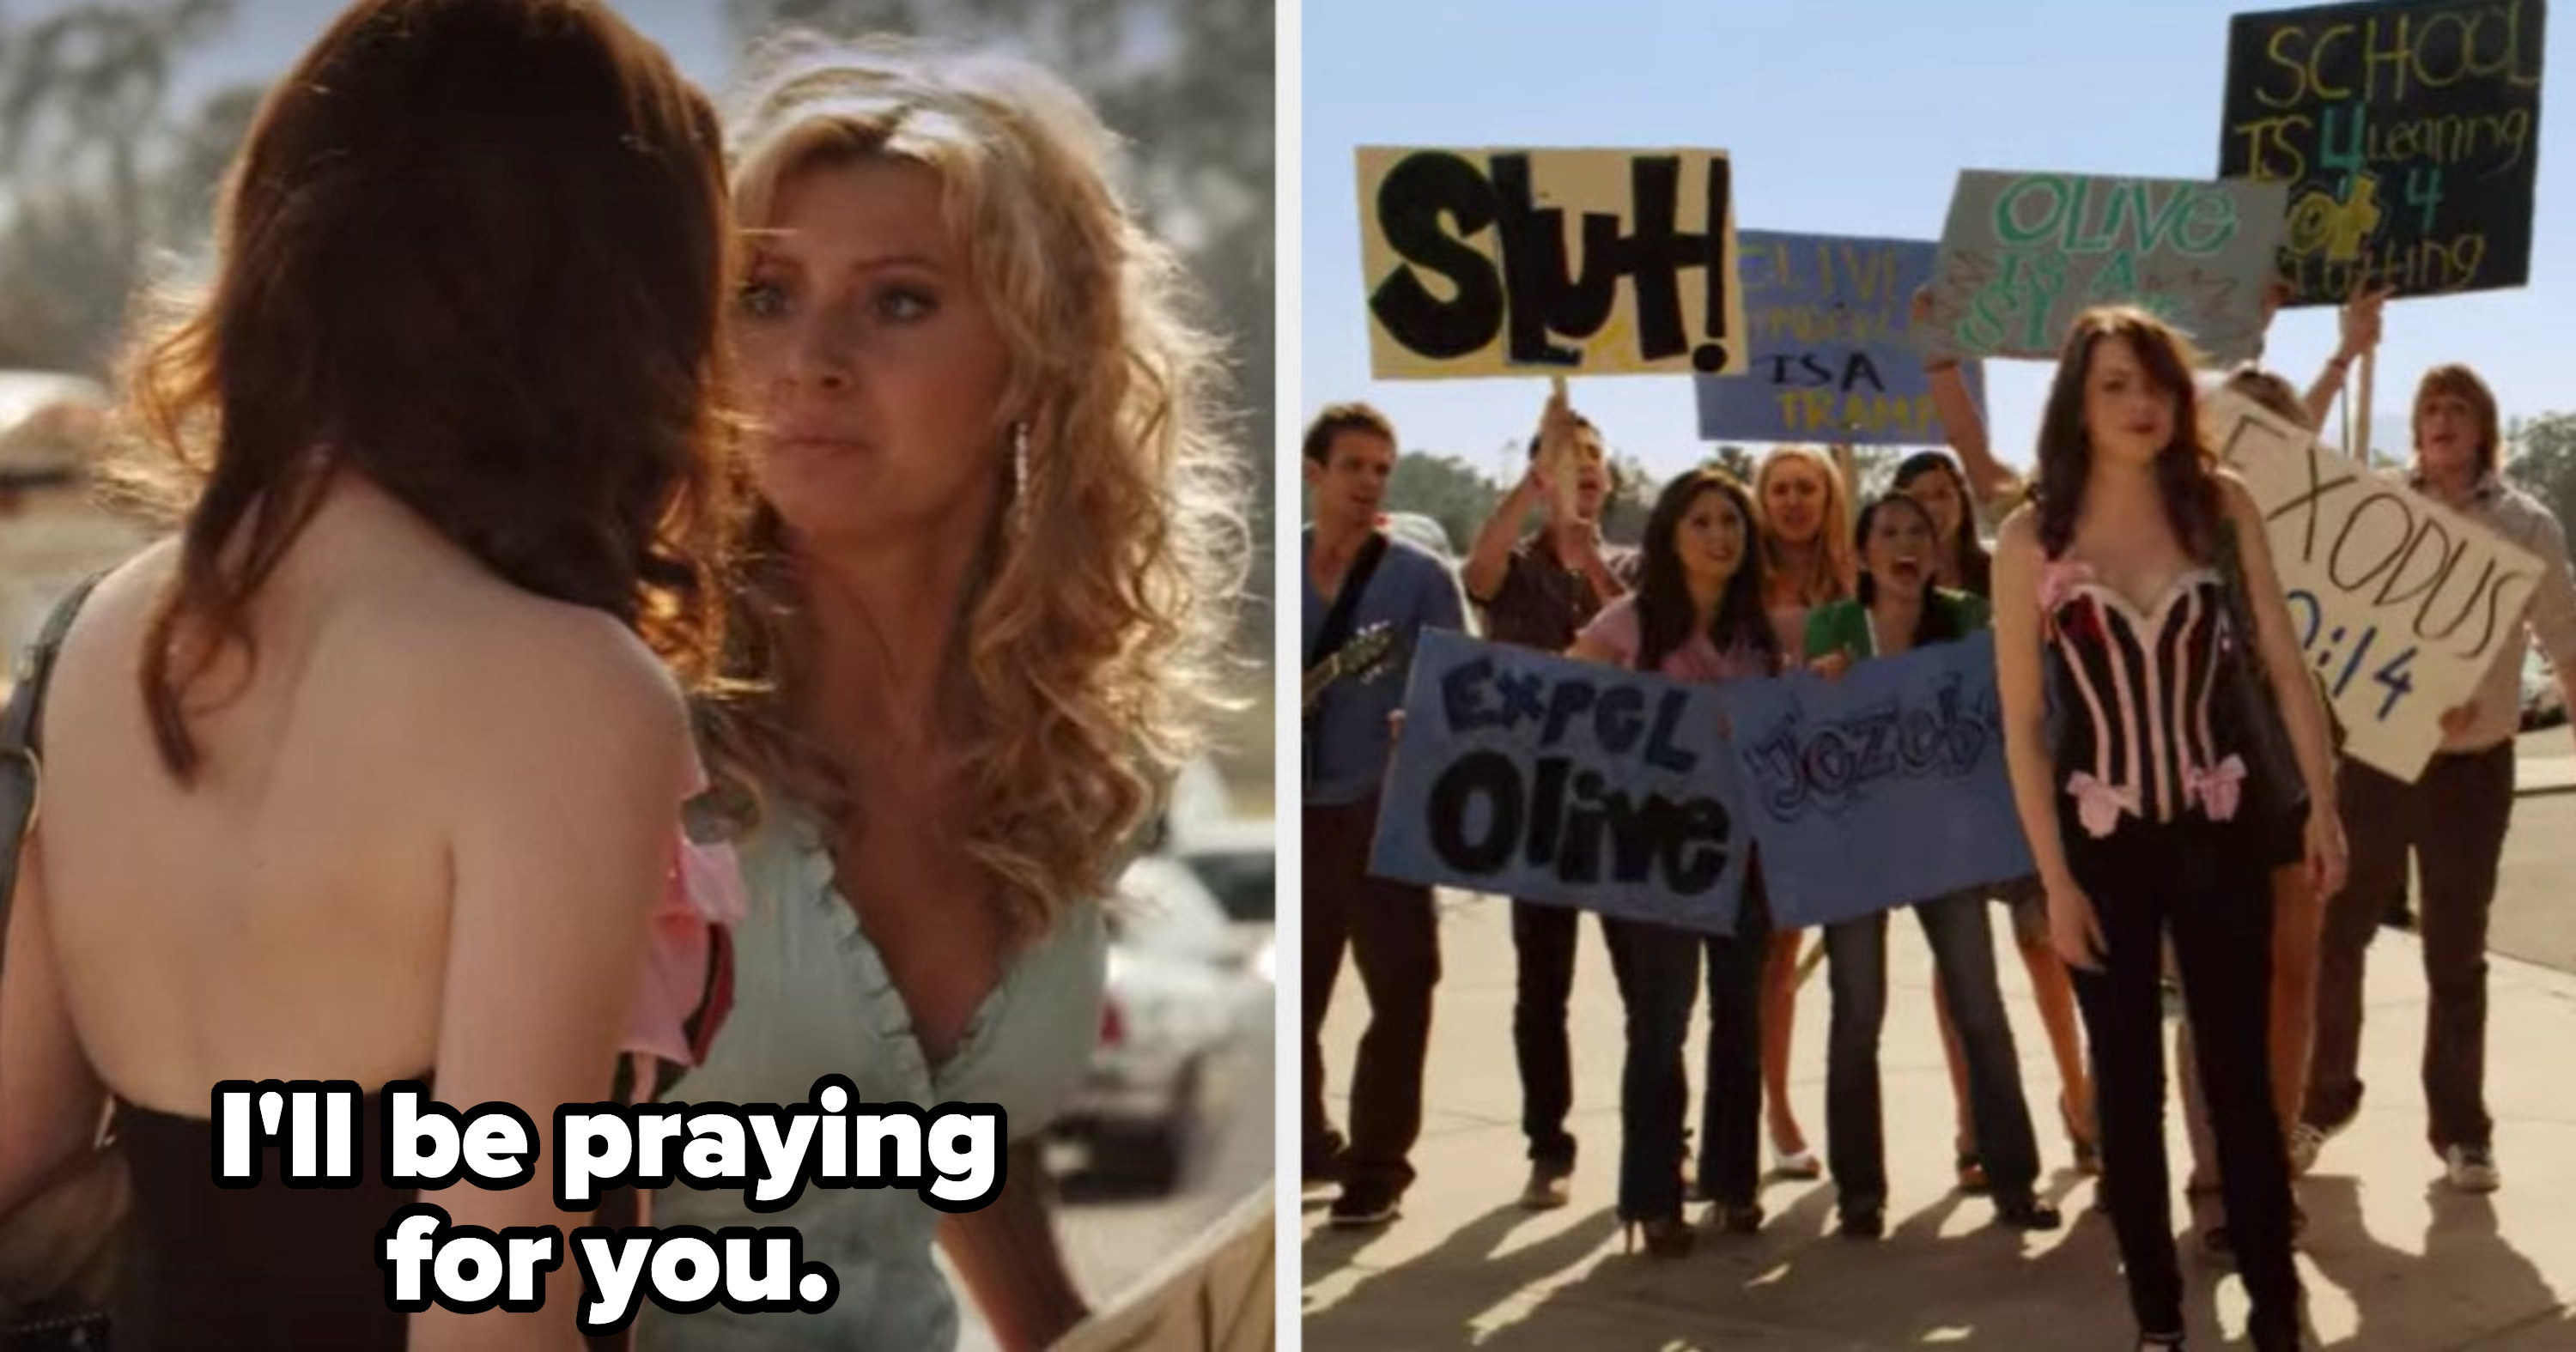 """Rhiannon telling Olive she'll be praying for her while other religious students harass Olive with slut-shaming signs in """"Easy A"""""""